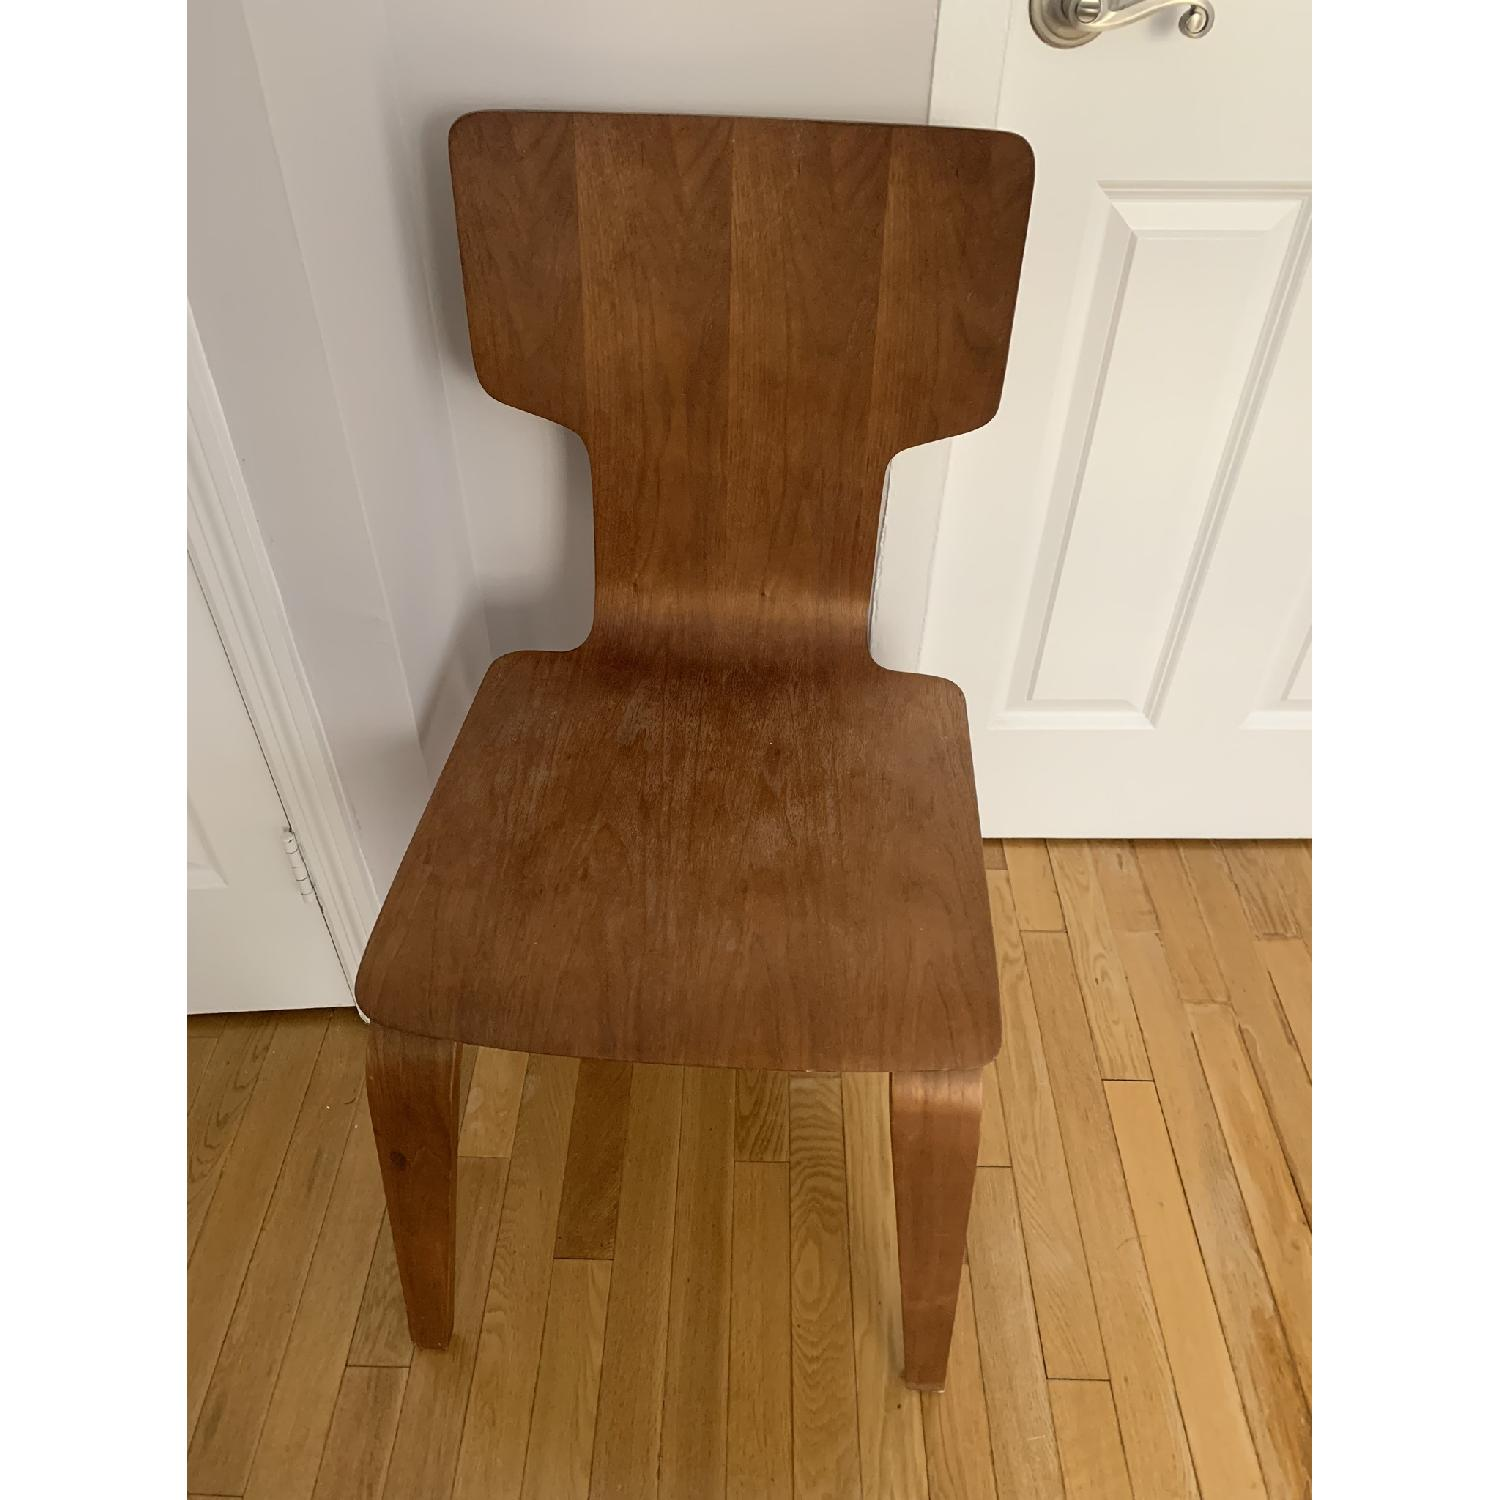 West Elm Stackable Dining Chair in Walnut - image-1